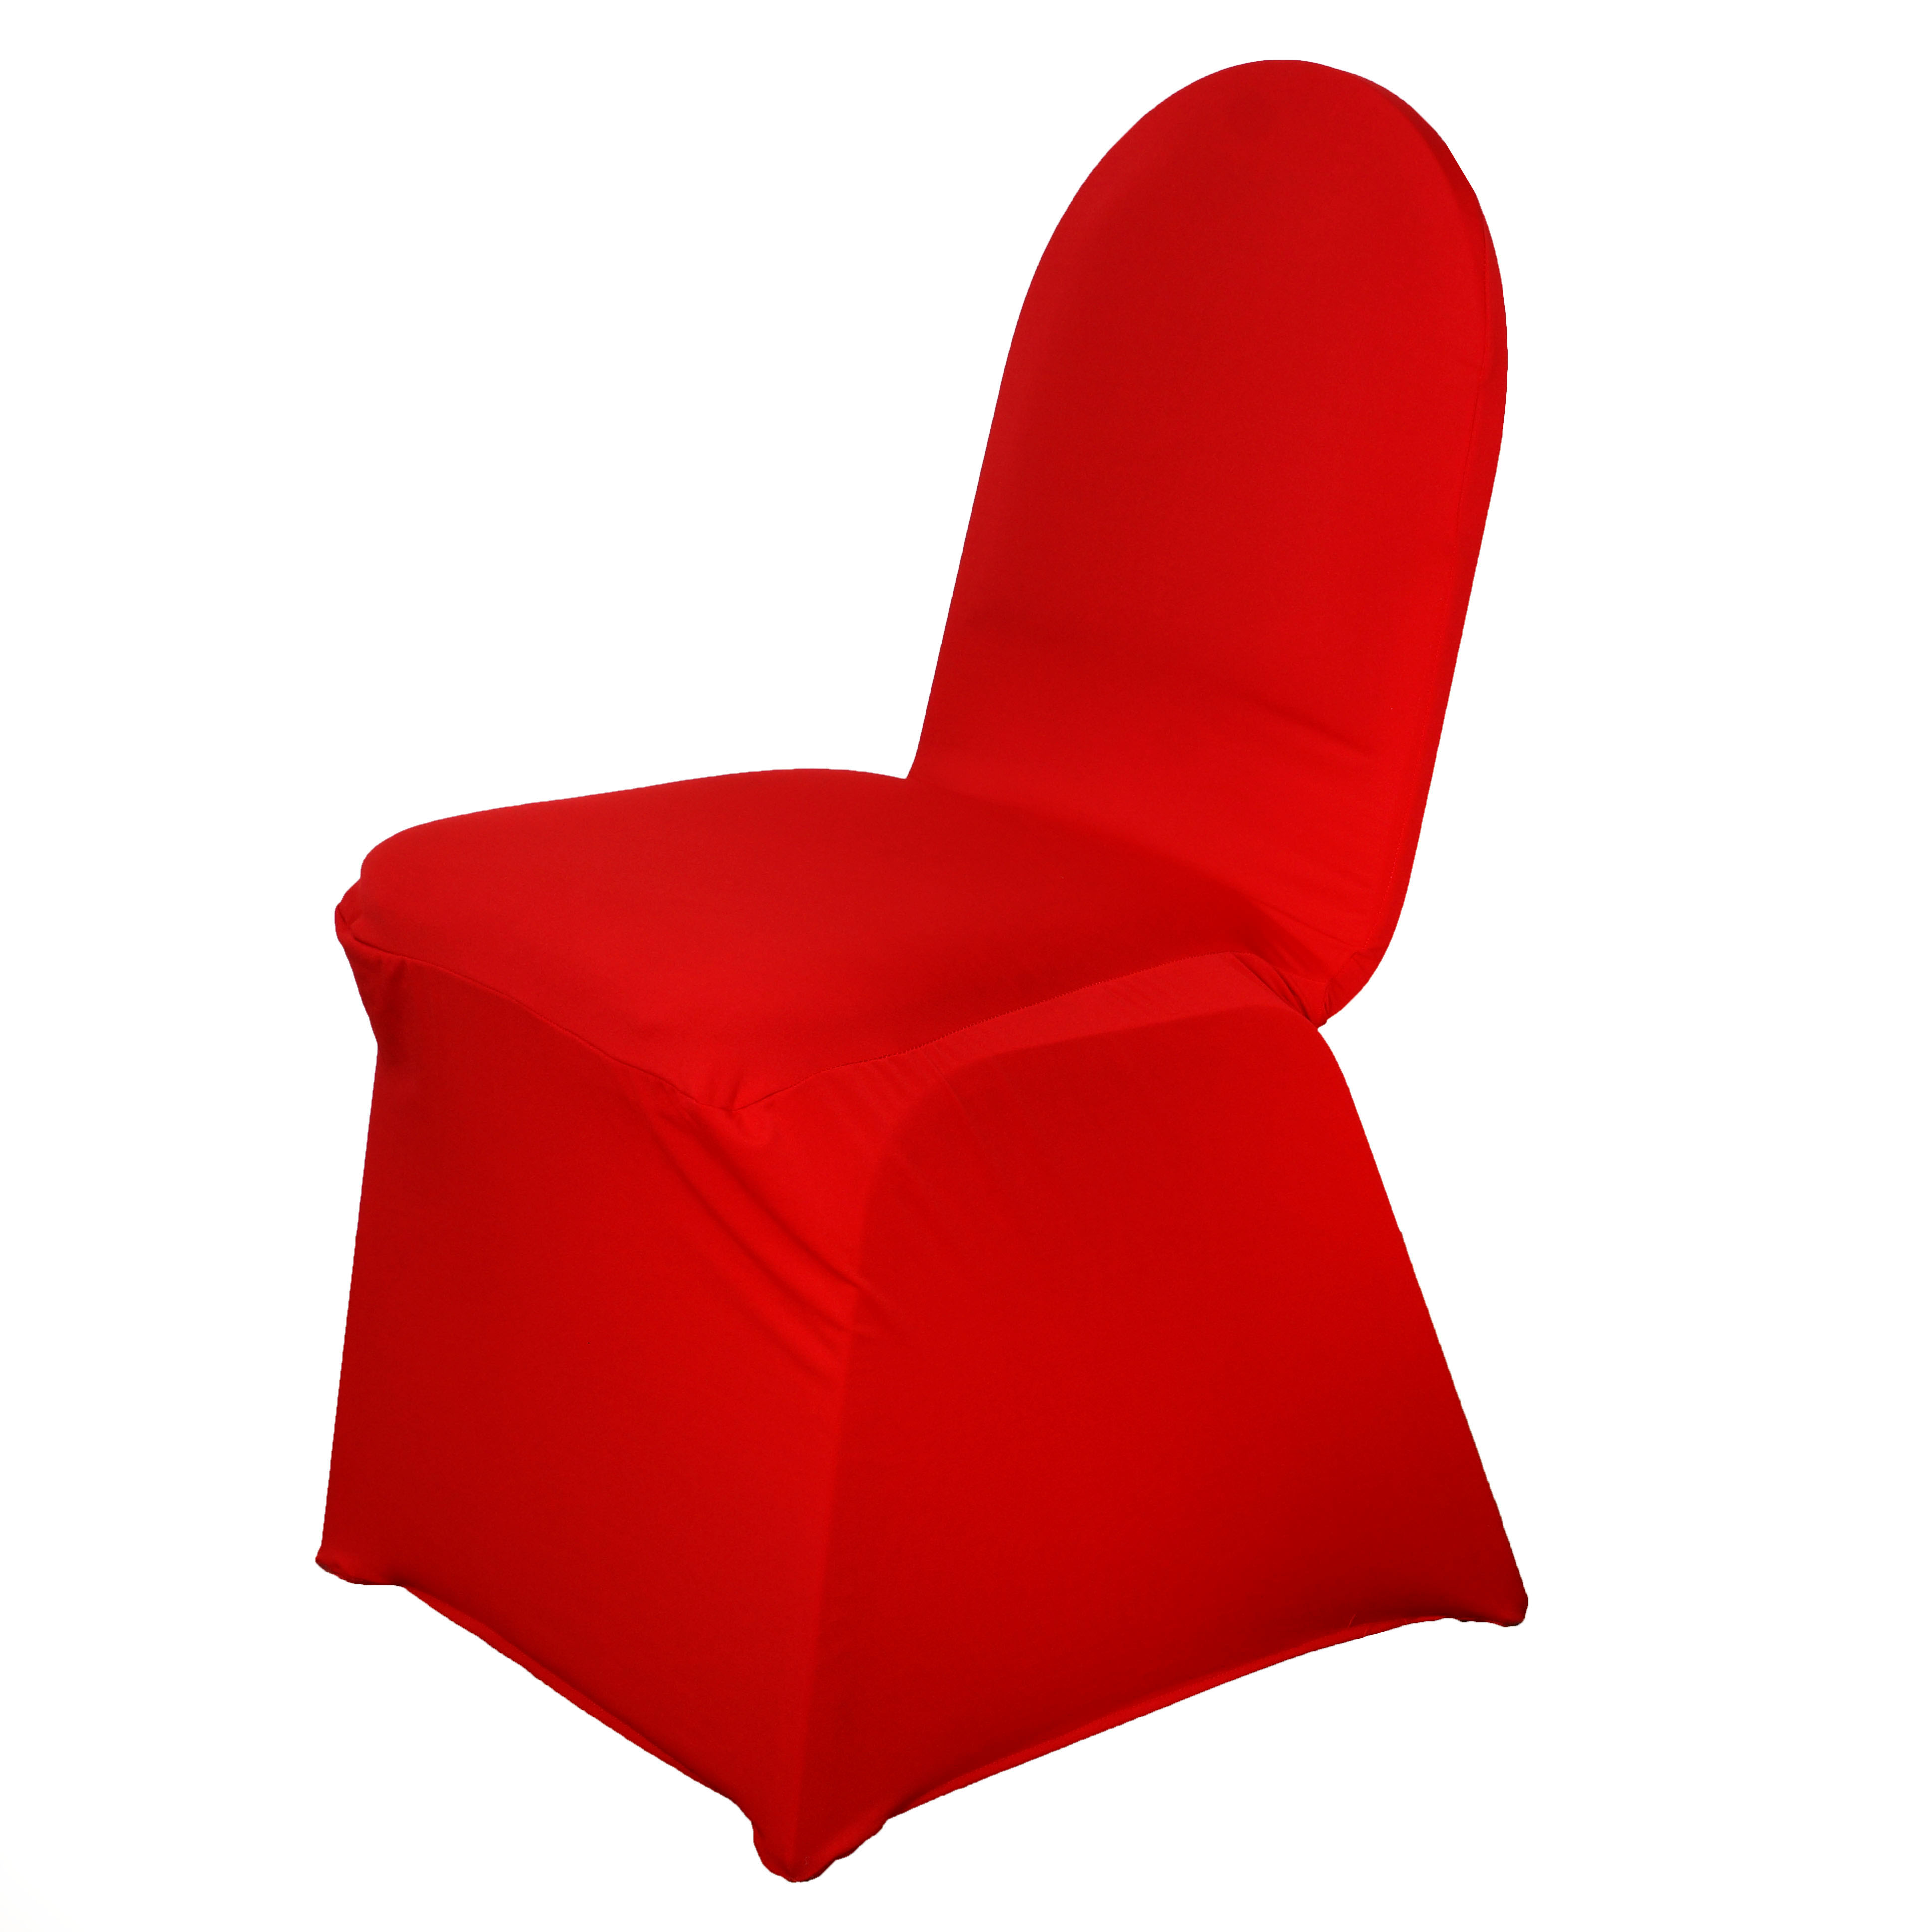 200 Pcs SPANDEX STRETCHABLE CHAIR COVERS Wholesale Wedding Party Ceremony SAL